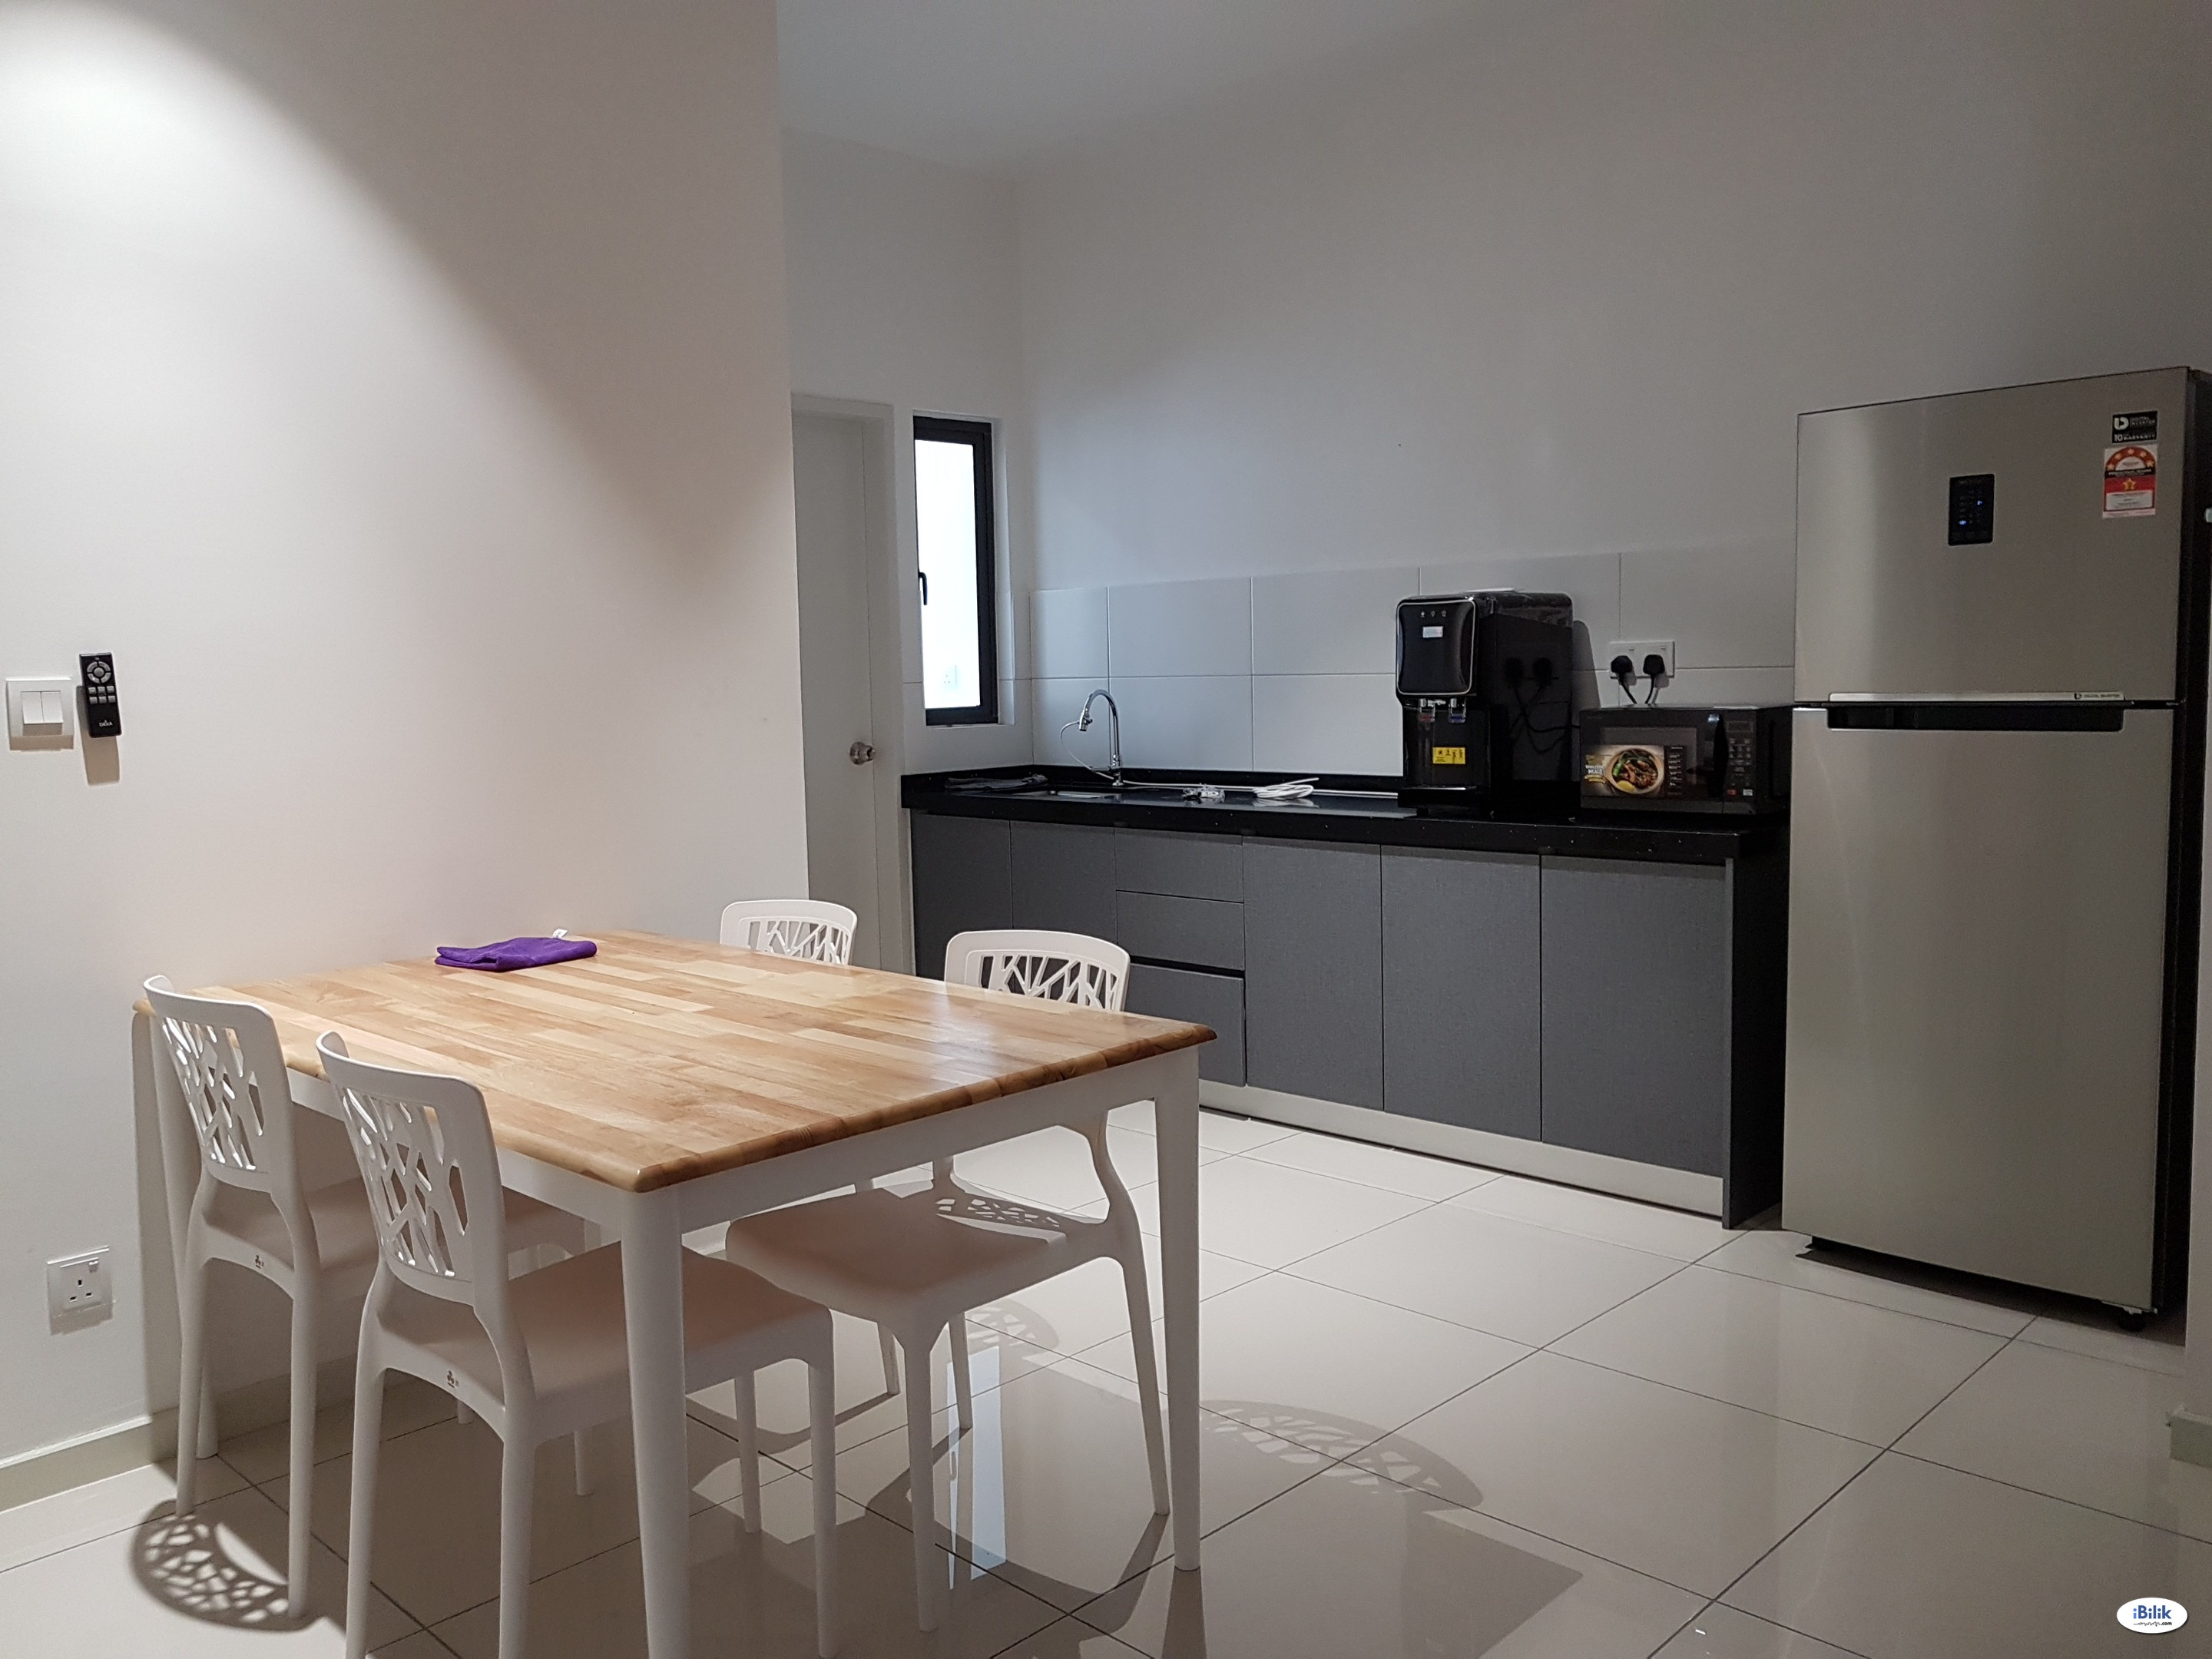 COURT 28 New Rooms, 6km to KL City, Walk to Mart/bus/Food